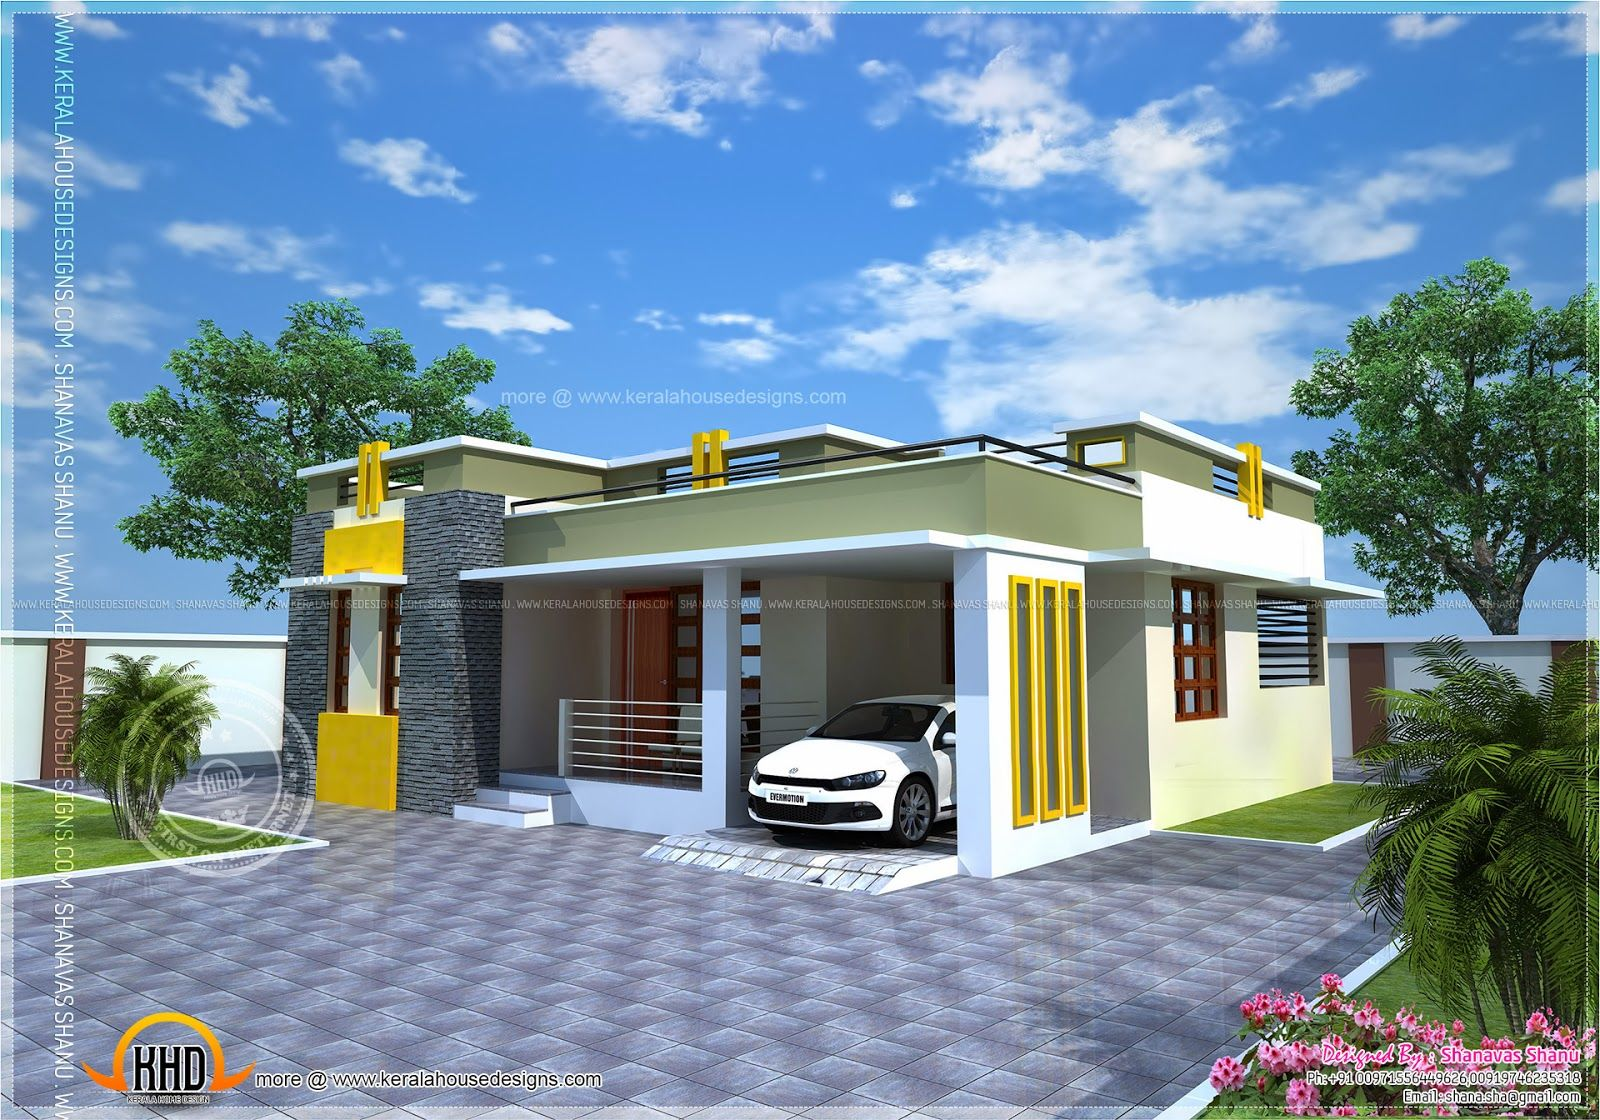 Check The Photos Of Some 35 Most Affordable And Simple Design That You Can Pattern Your Dream Kerala House Design House Plans With Pictures Modern House Plans